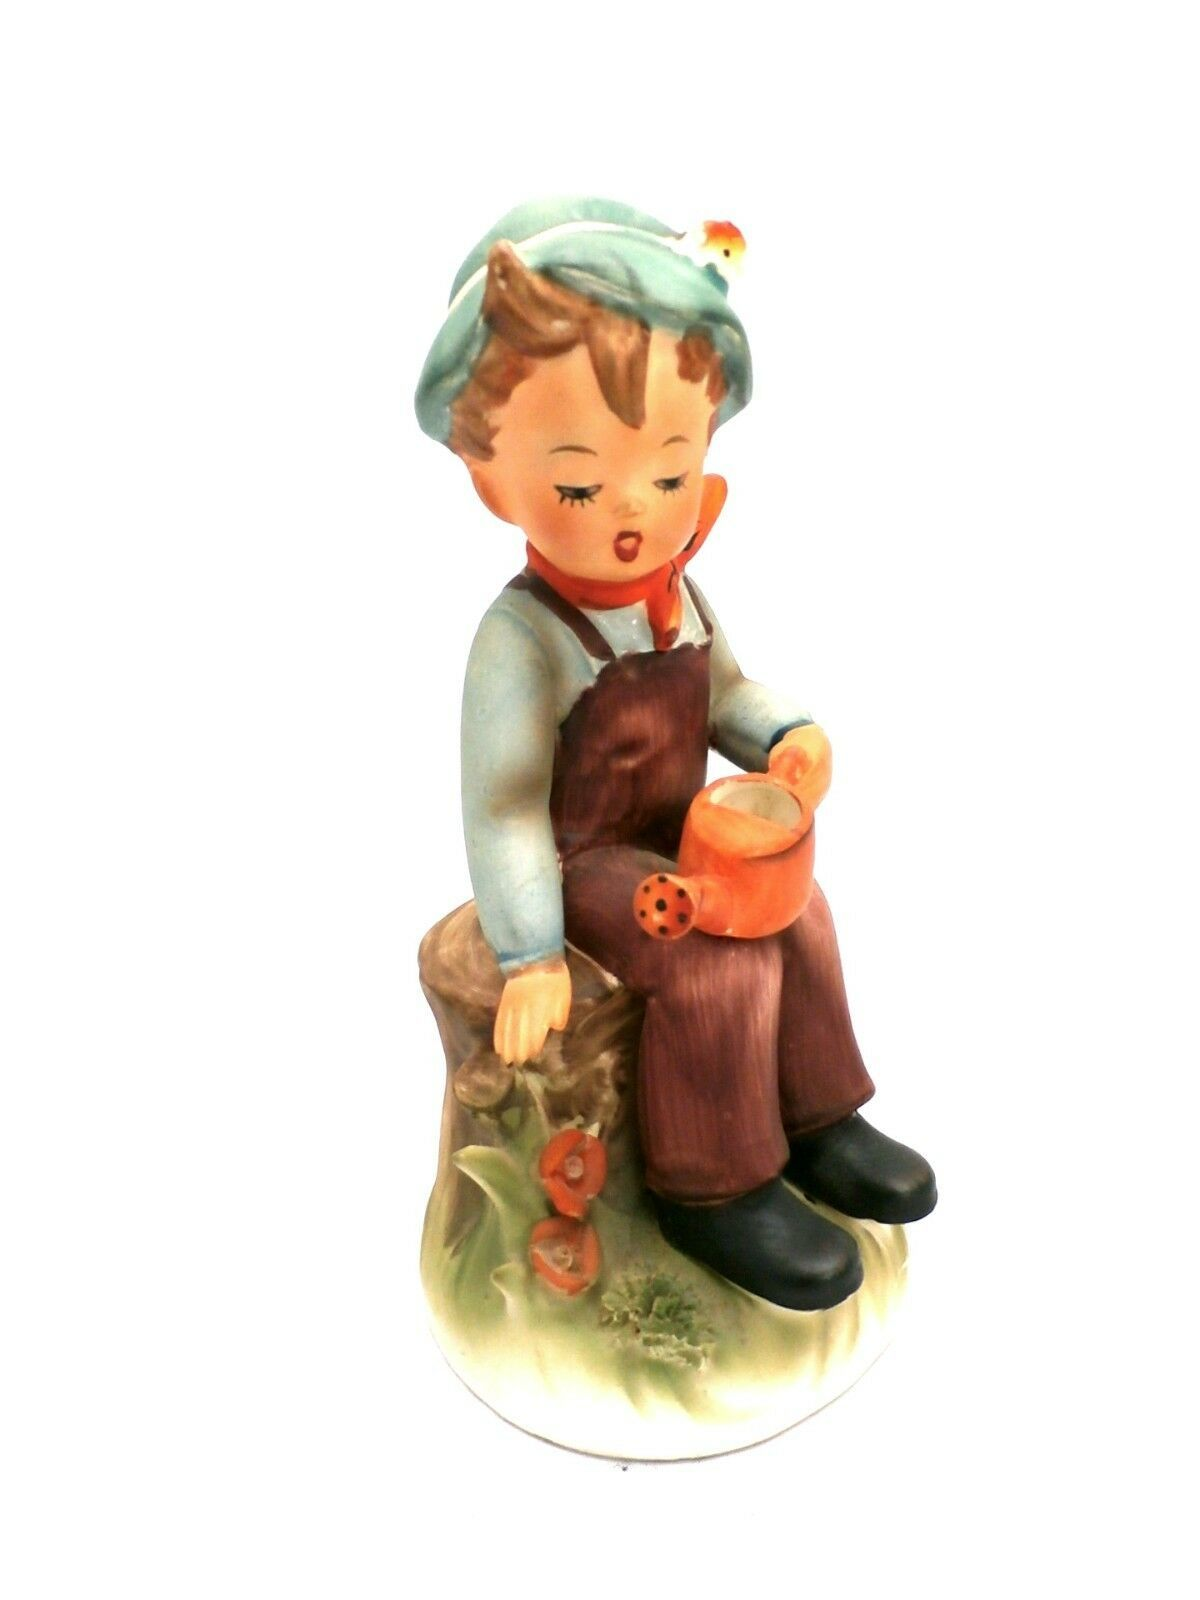 Vintage Ercih Stauffer Figurines Young Folks S8515 Pair